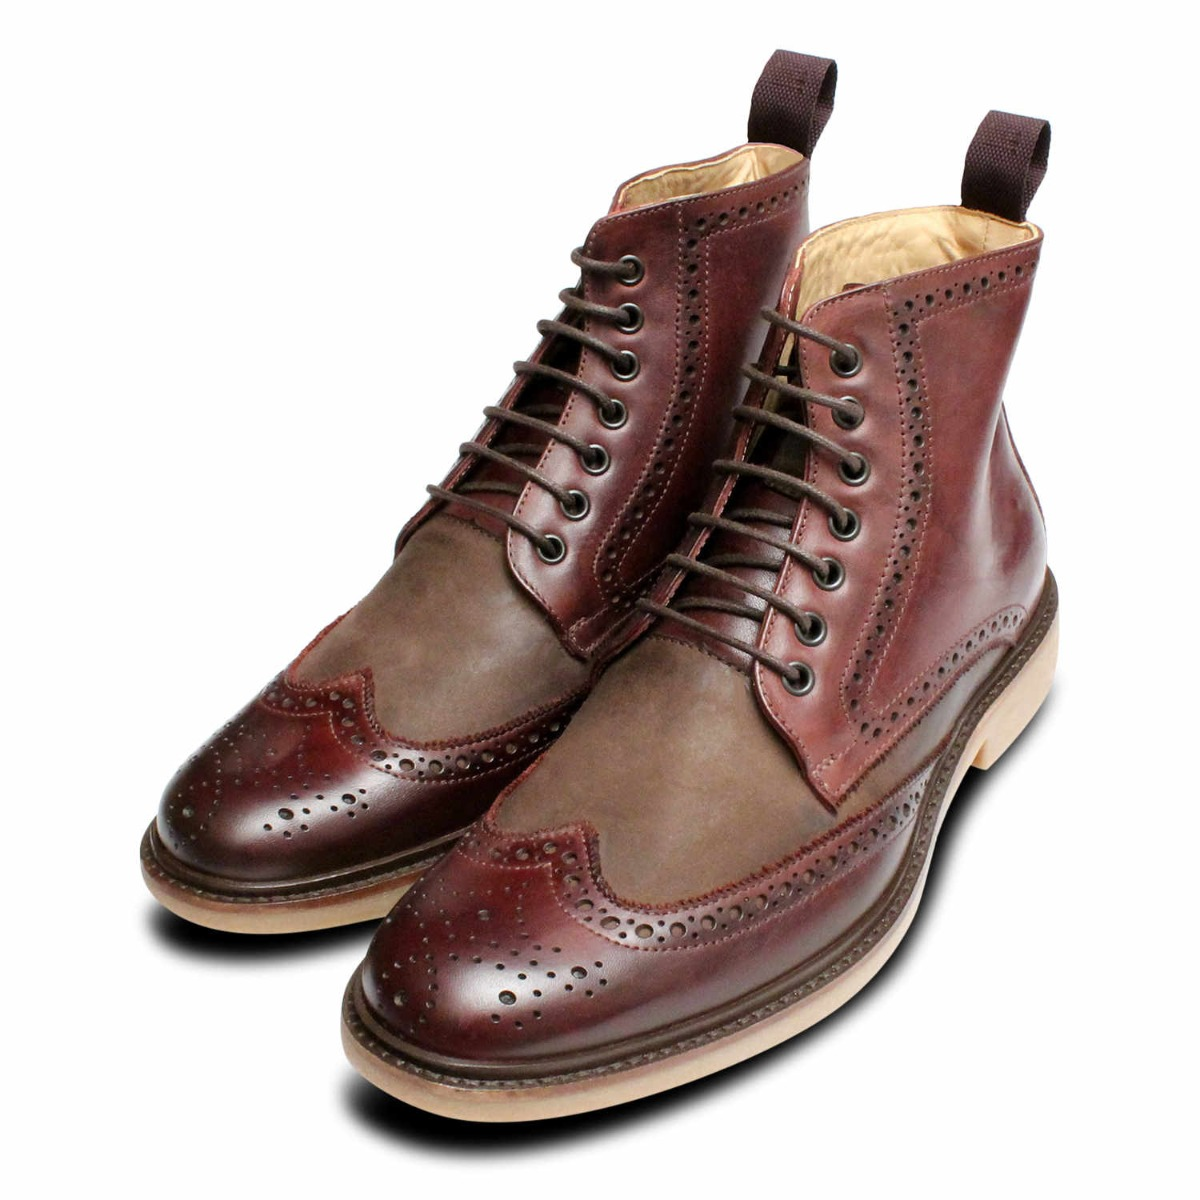 Anatomic By New Tone Burgundy Shoes Boots Brogue Two xSxCYWwqf